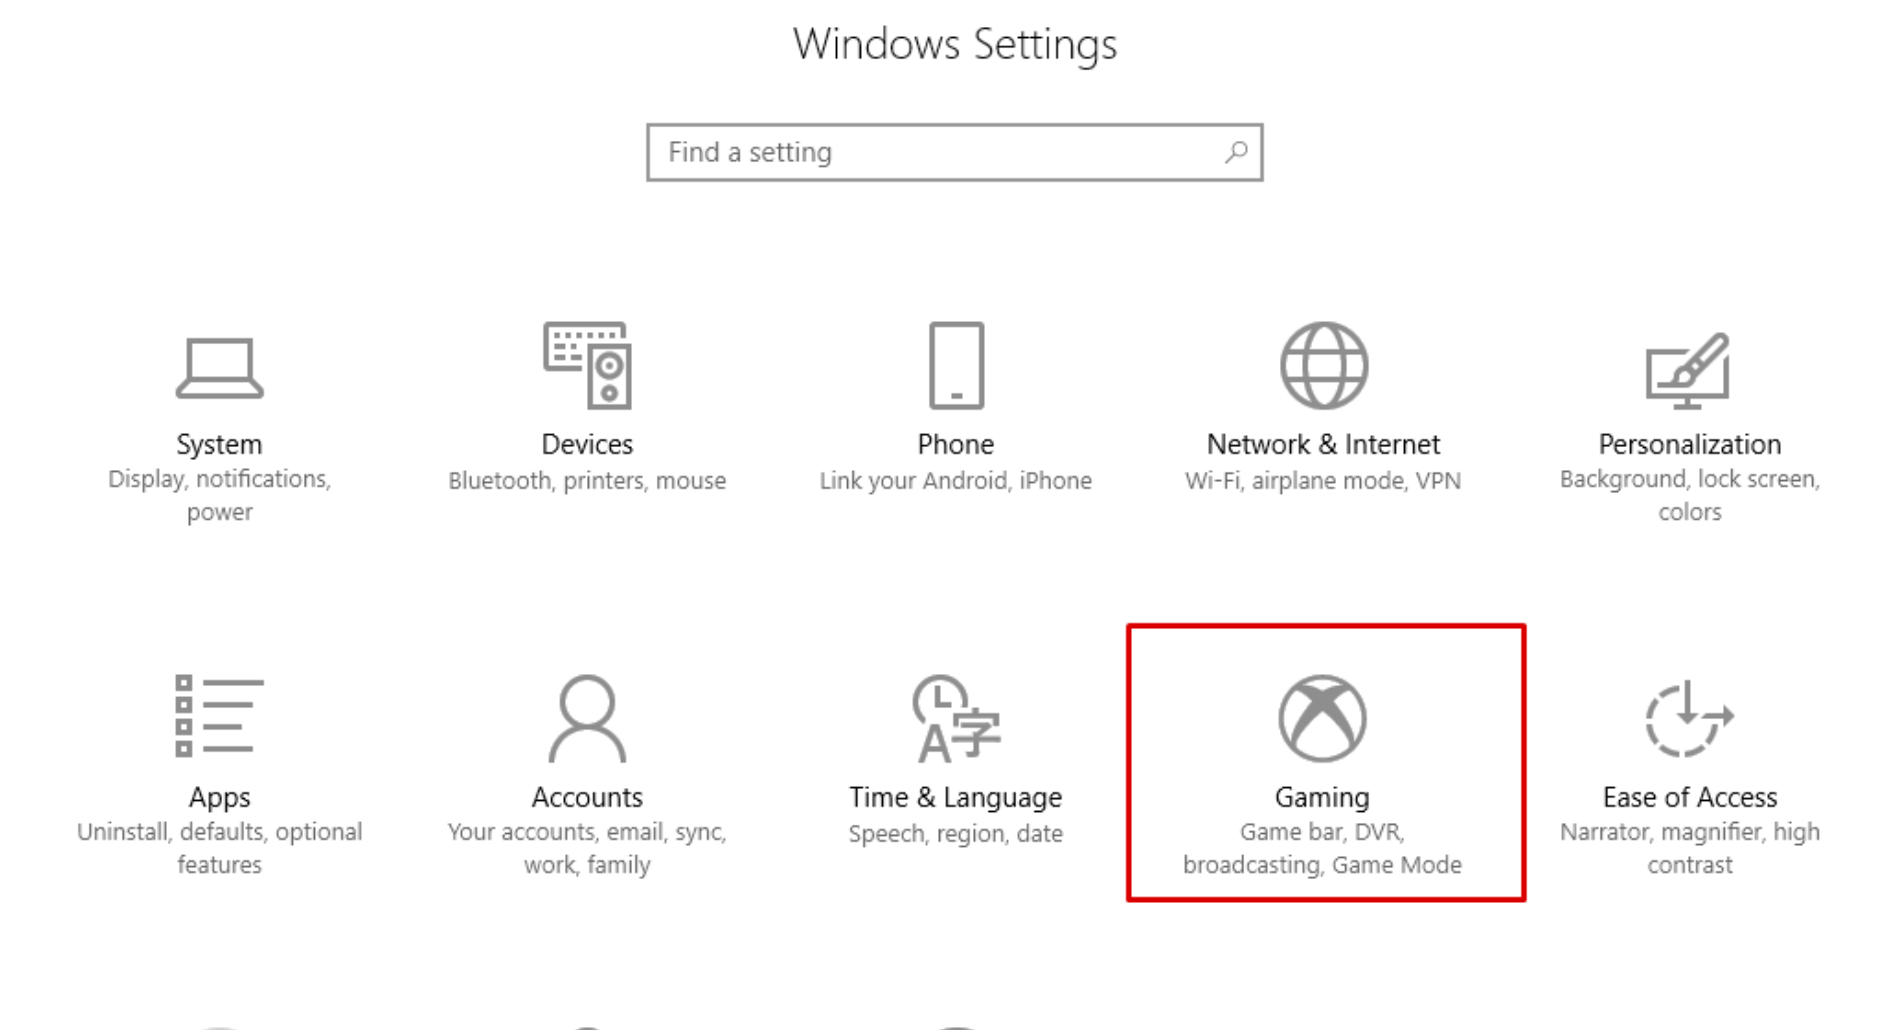 Windows Gaming Settings